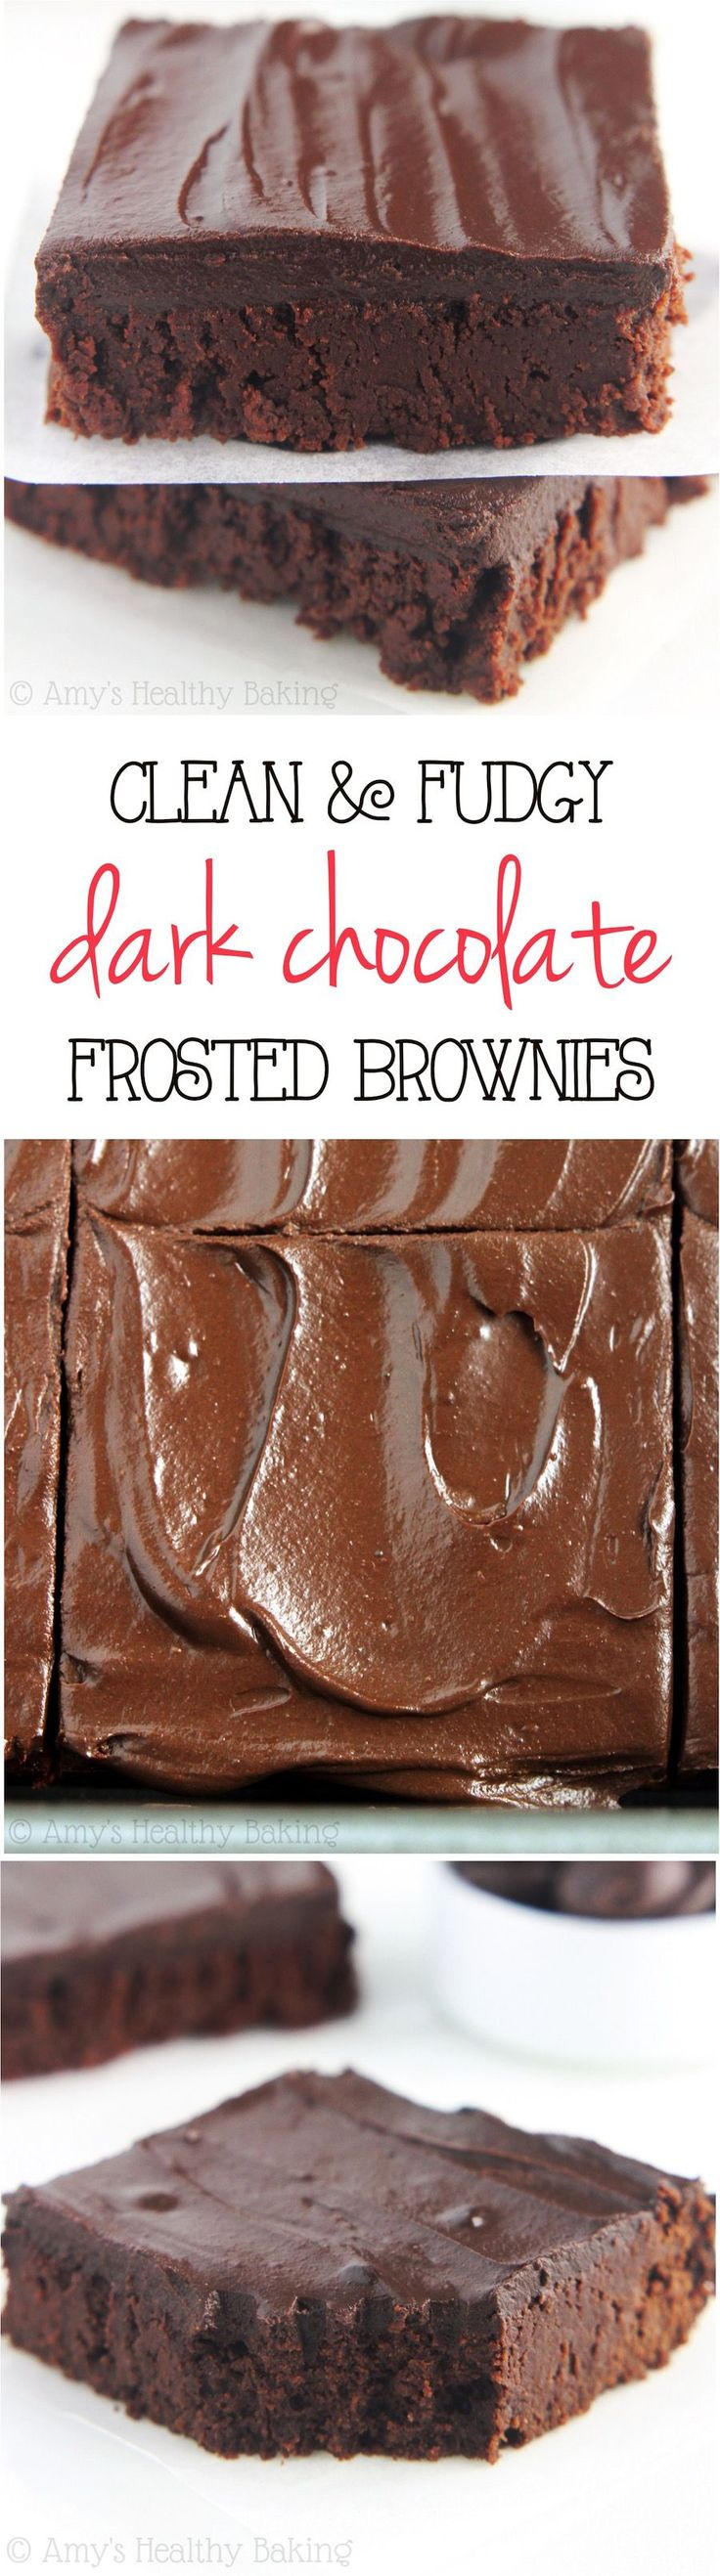 Clean-Eating Fudgy Dark Chocolate Frosted Brownies -- these skinny brownies don't taste healthy at all! They're insanely rich, as easy as a box mix & only 100 calories!